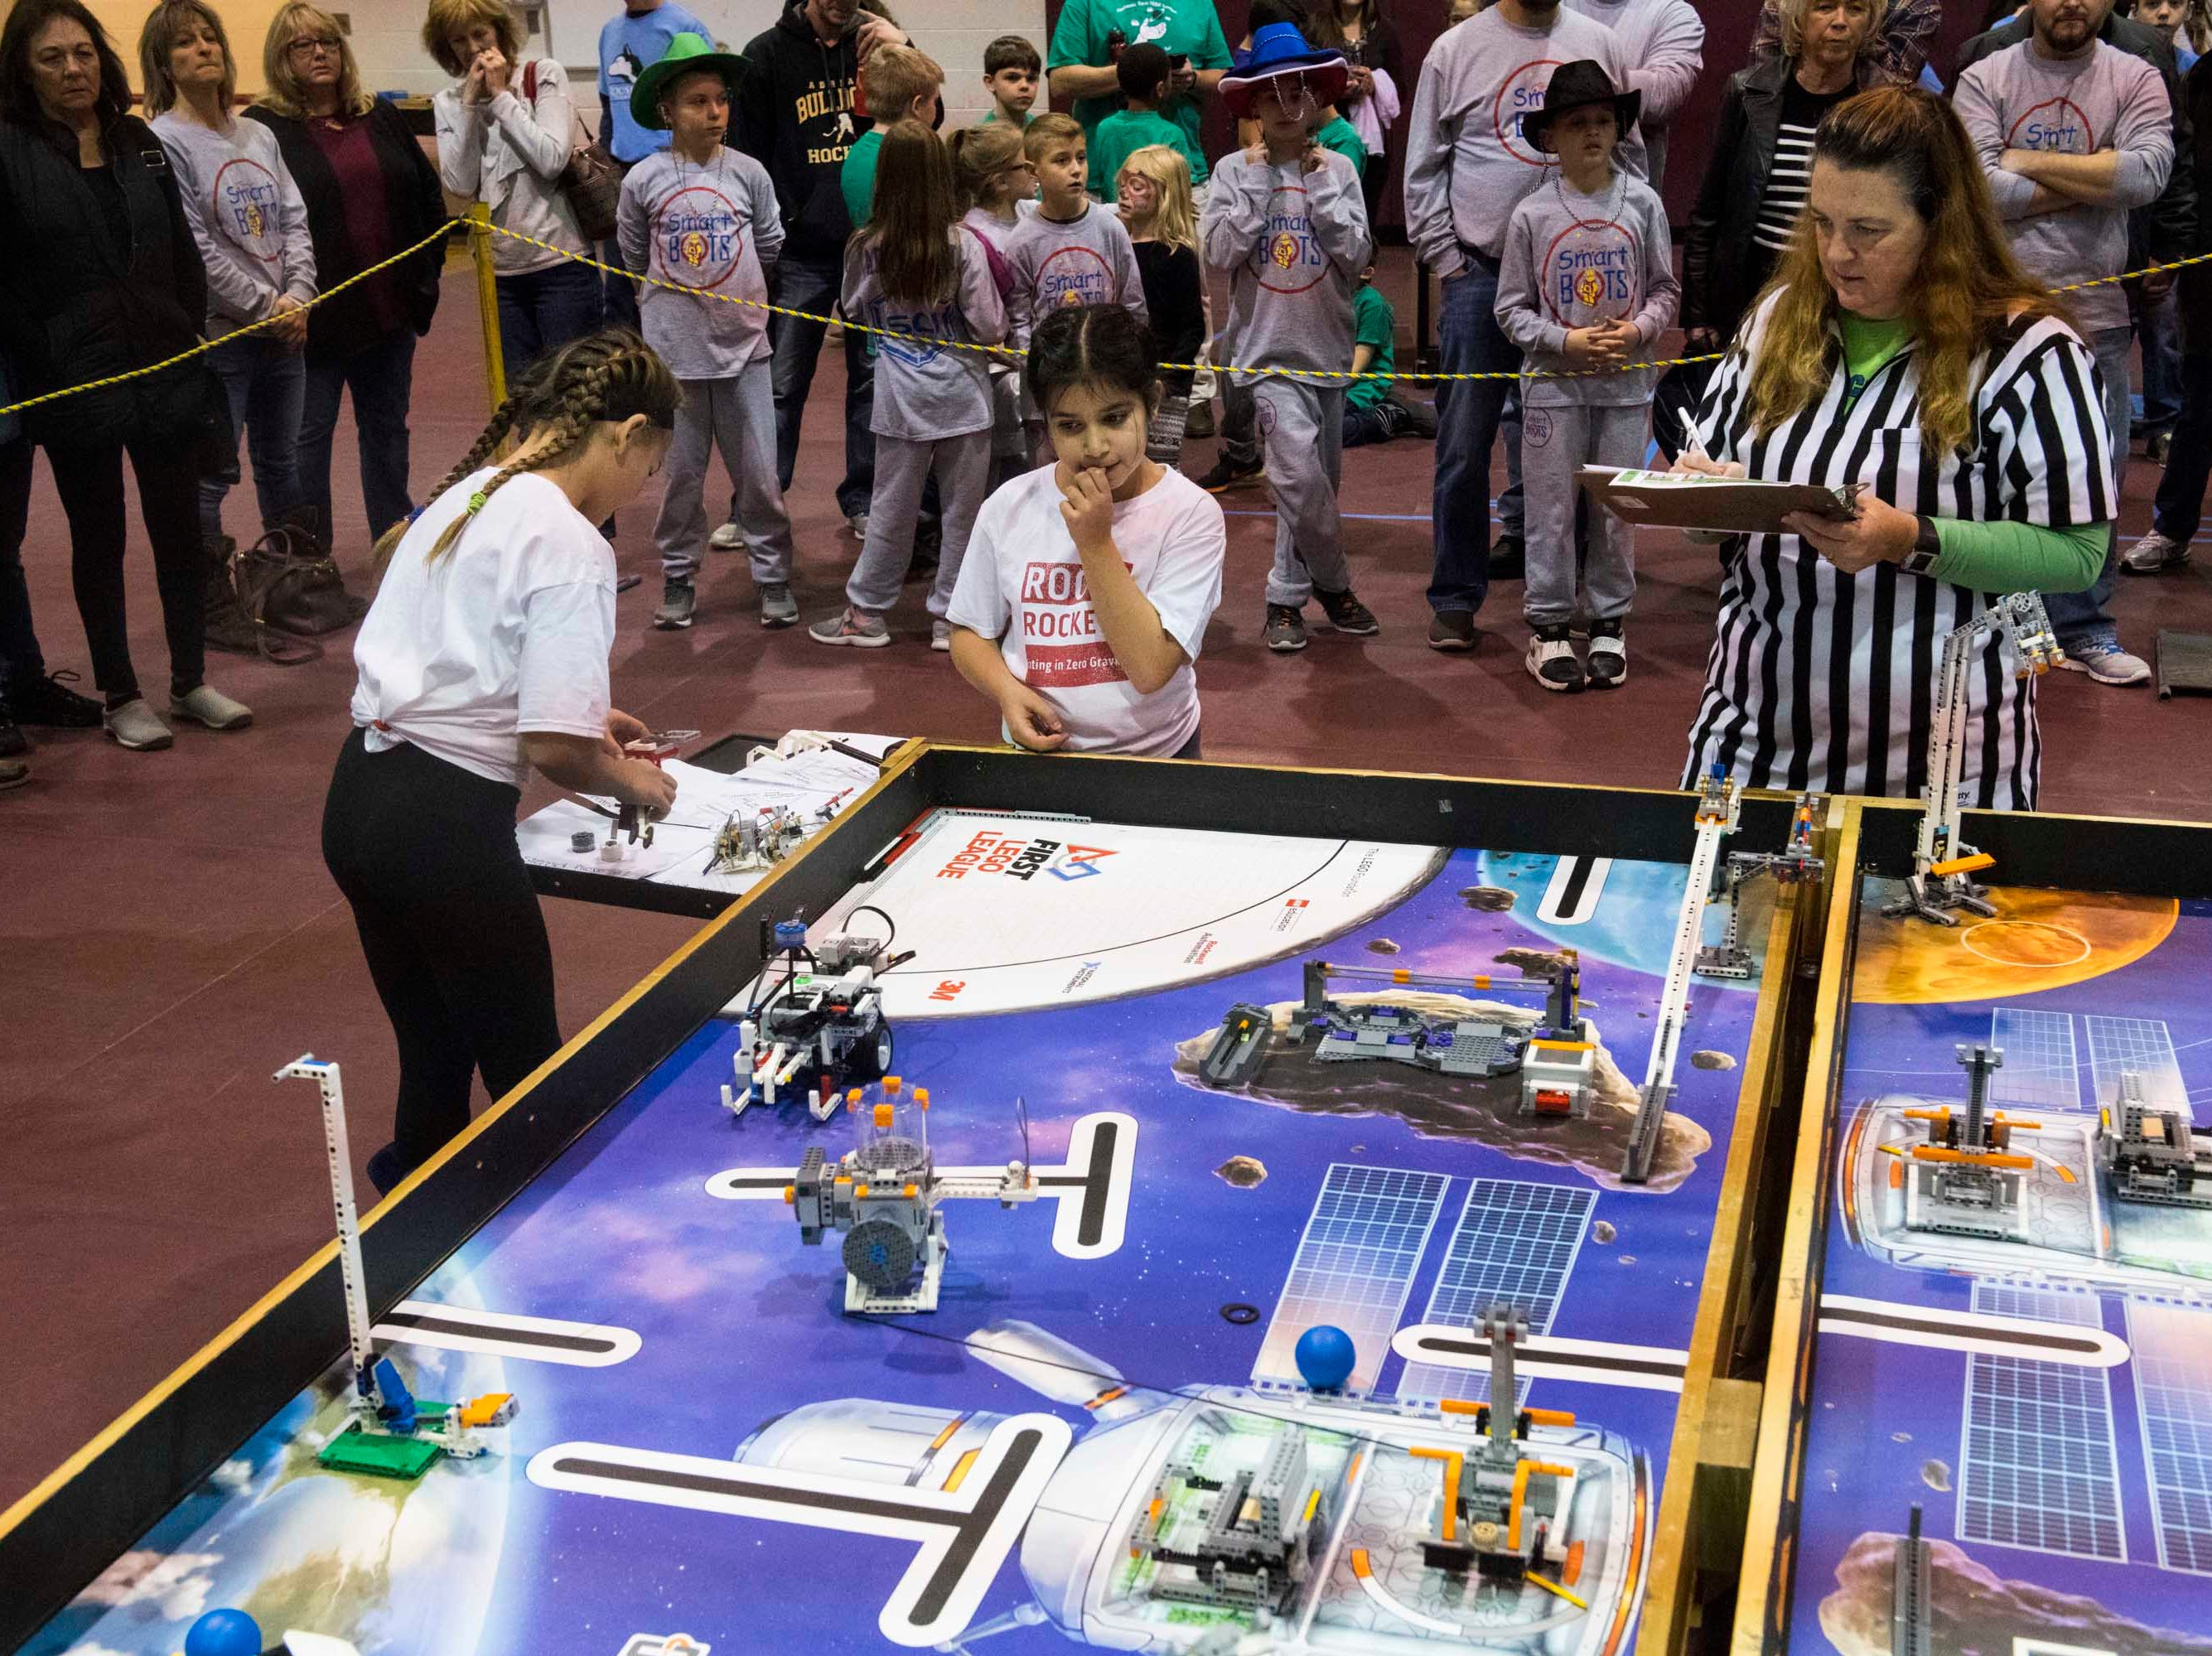 The Roose Rockets robotics team of Roose Elementary in Warren competes against the Smart Bots of Macomb, not pictured, at ThunderQuest.